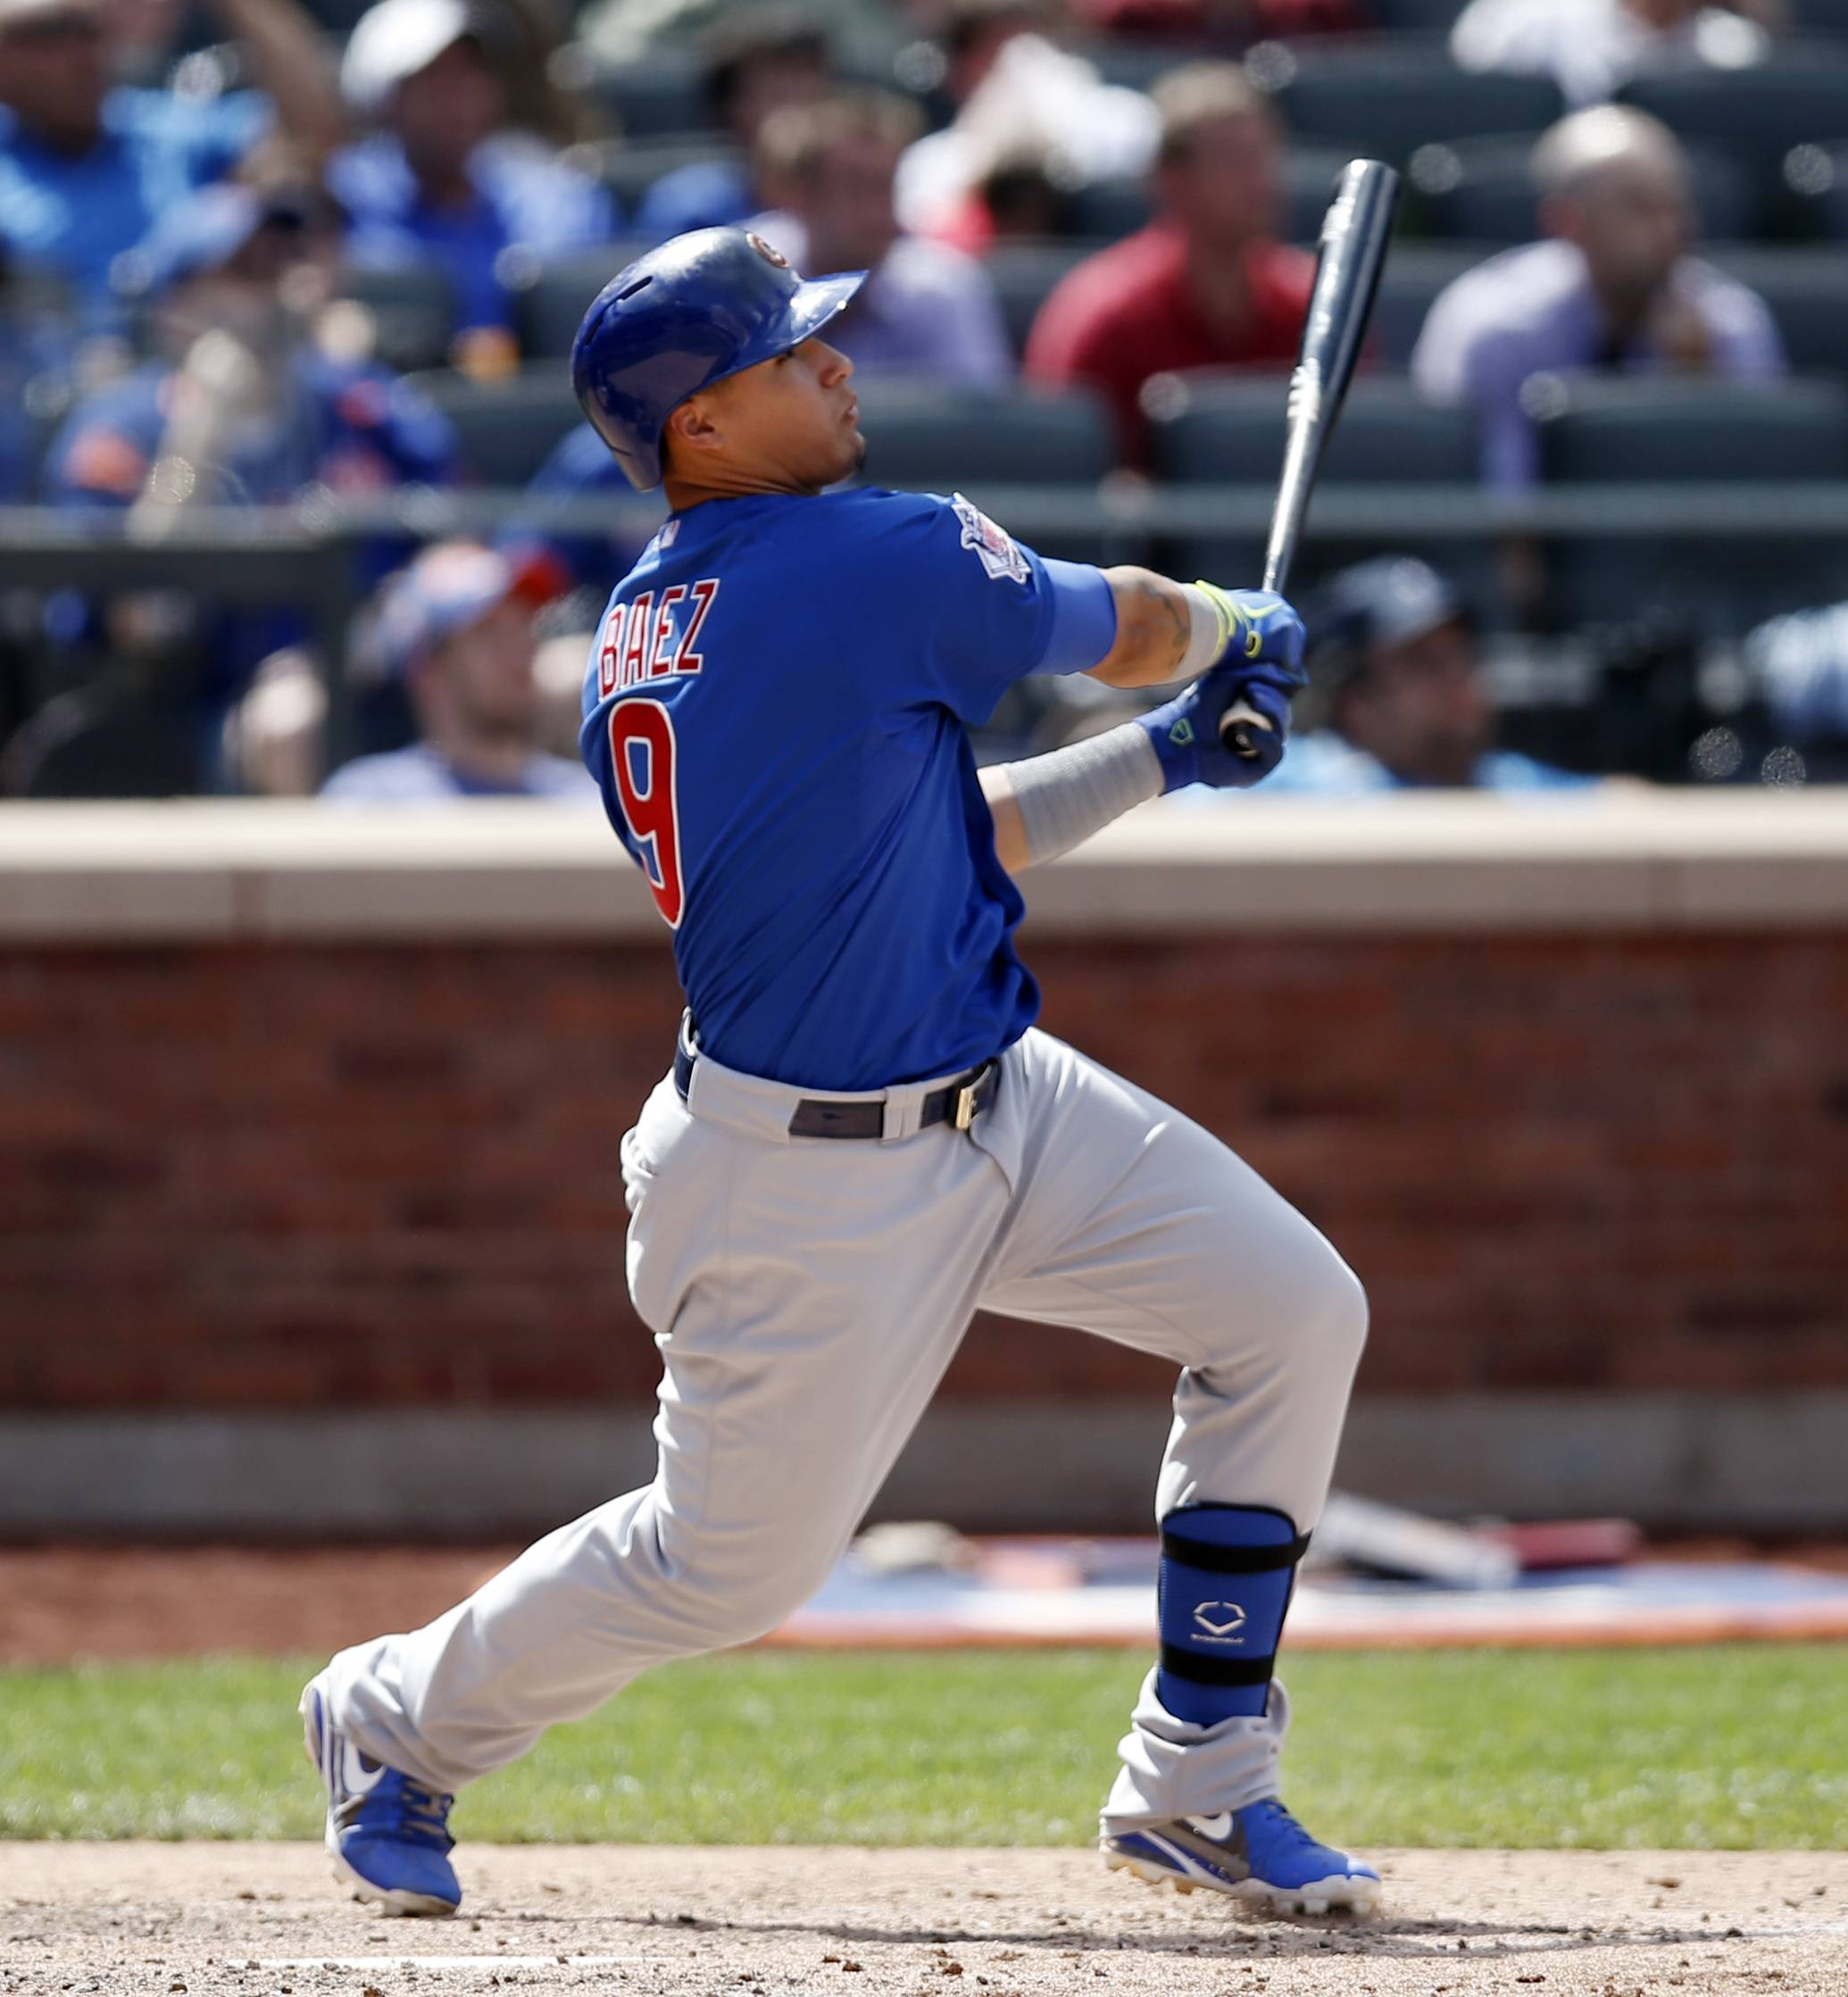 Cubs second baseman Javier Baez hits a two-run home run off New York Mets relief pitcher Jenrry Mejia Monday during the ninth inning at Citi Field in New York.